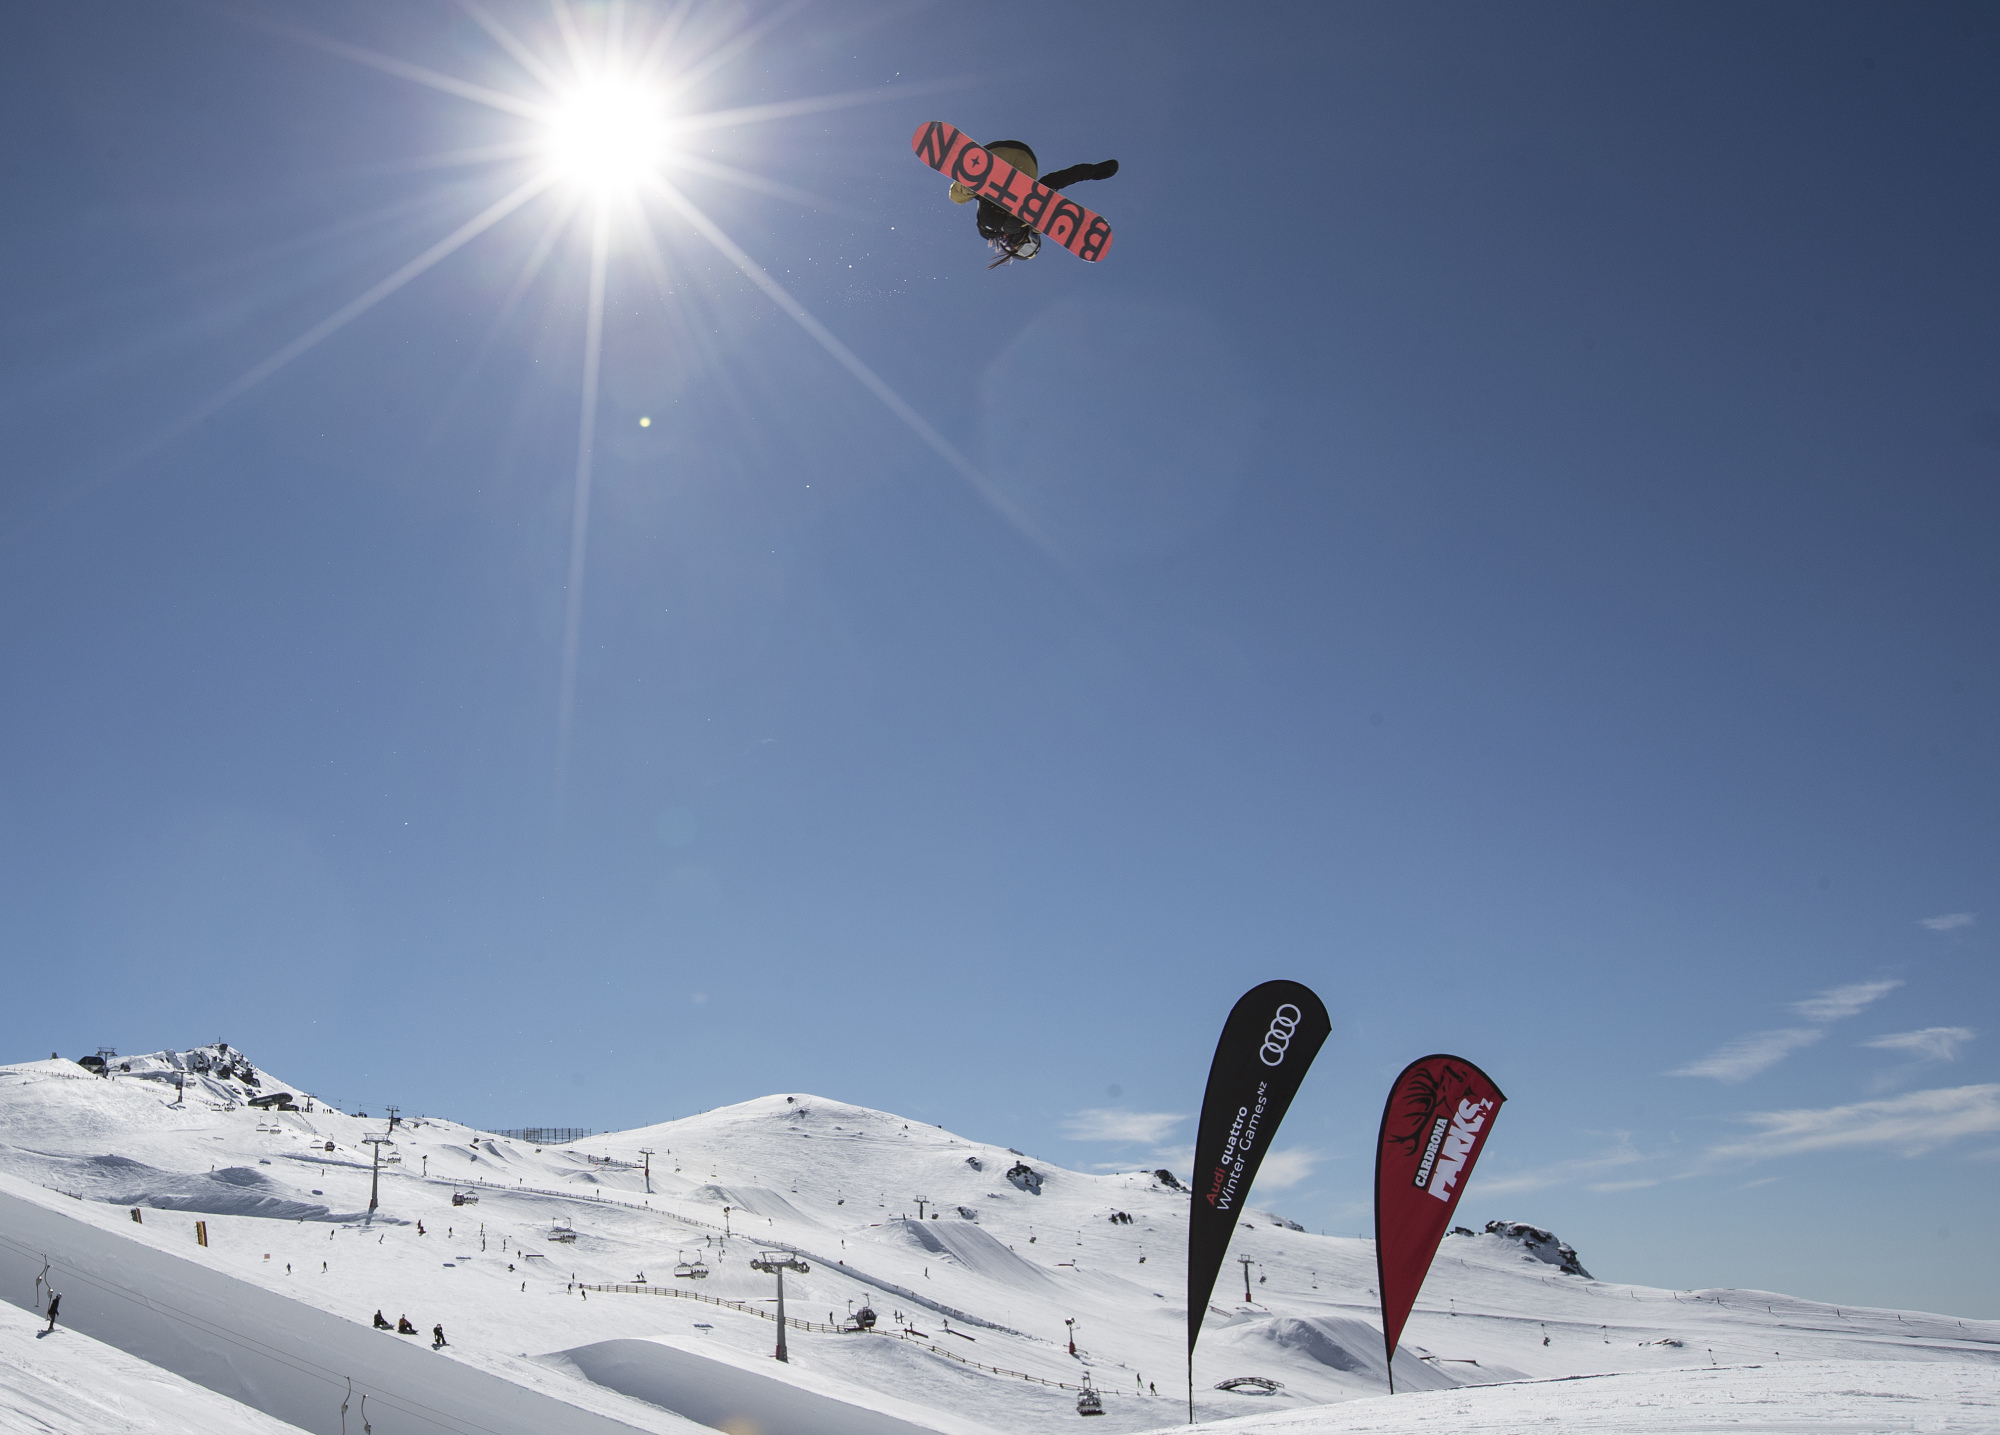 Reira Iwabuchi competes in the women's snowboard big air final at the Winter Games NZ in Cardrona, New Zealand, on Saturday.   AP